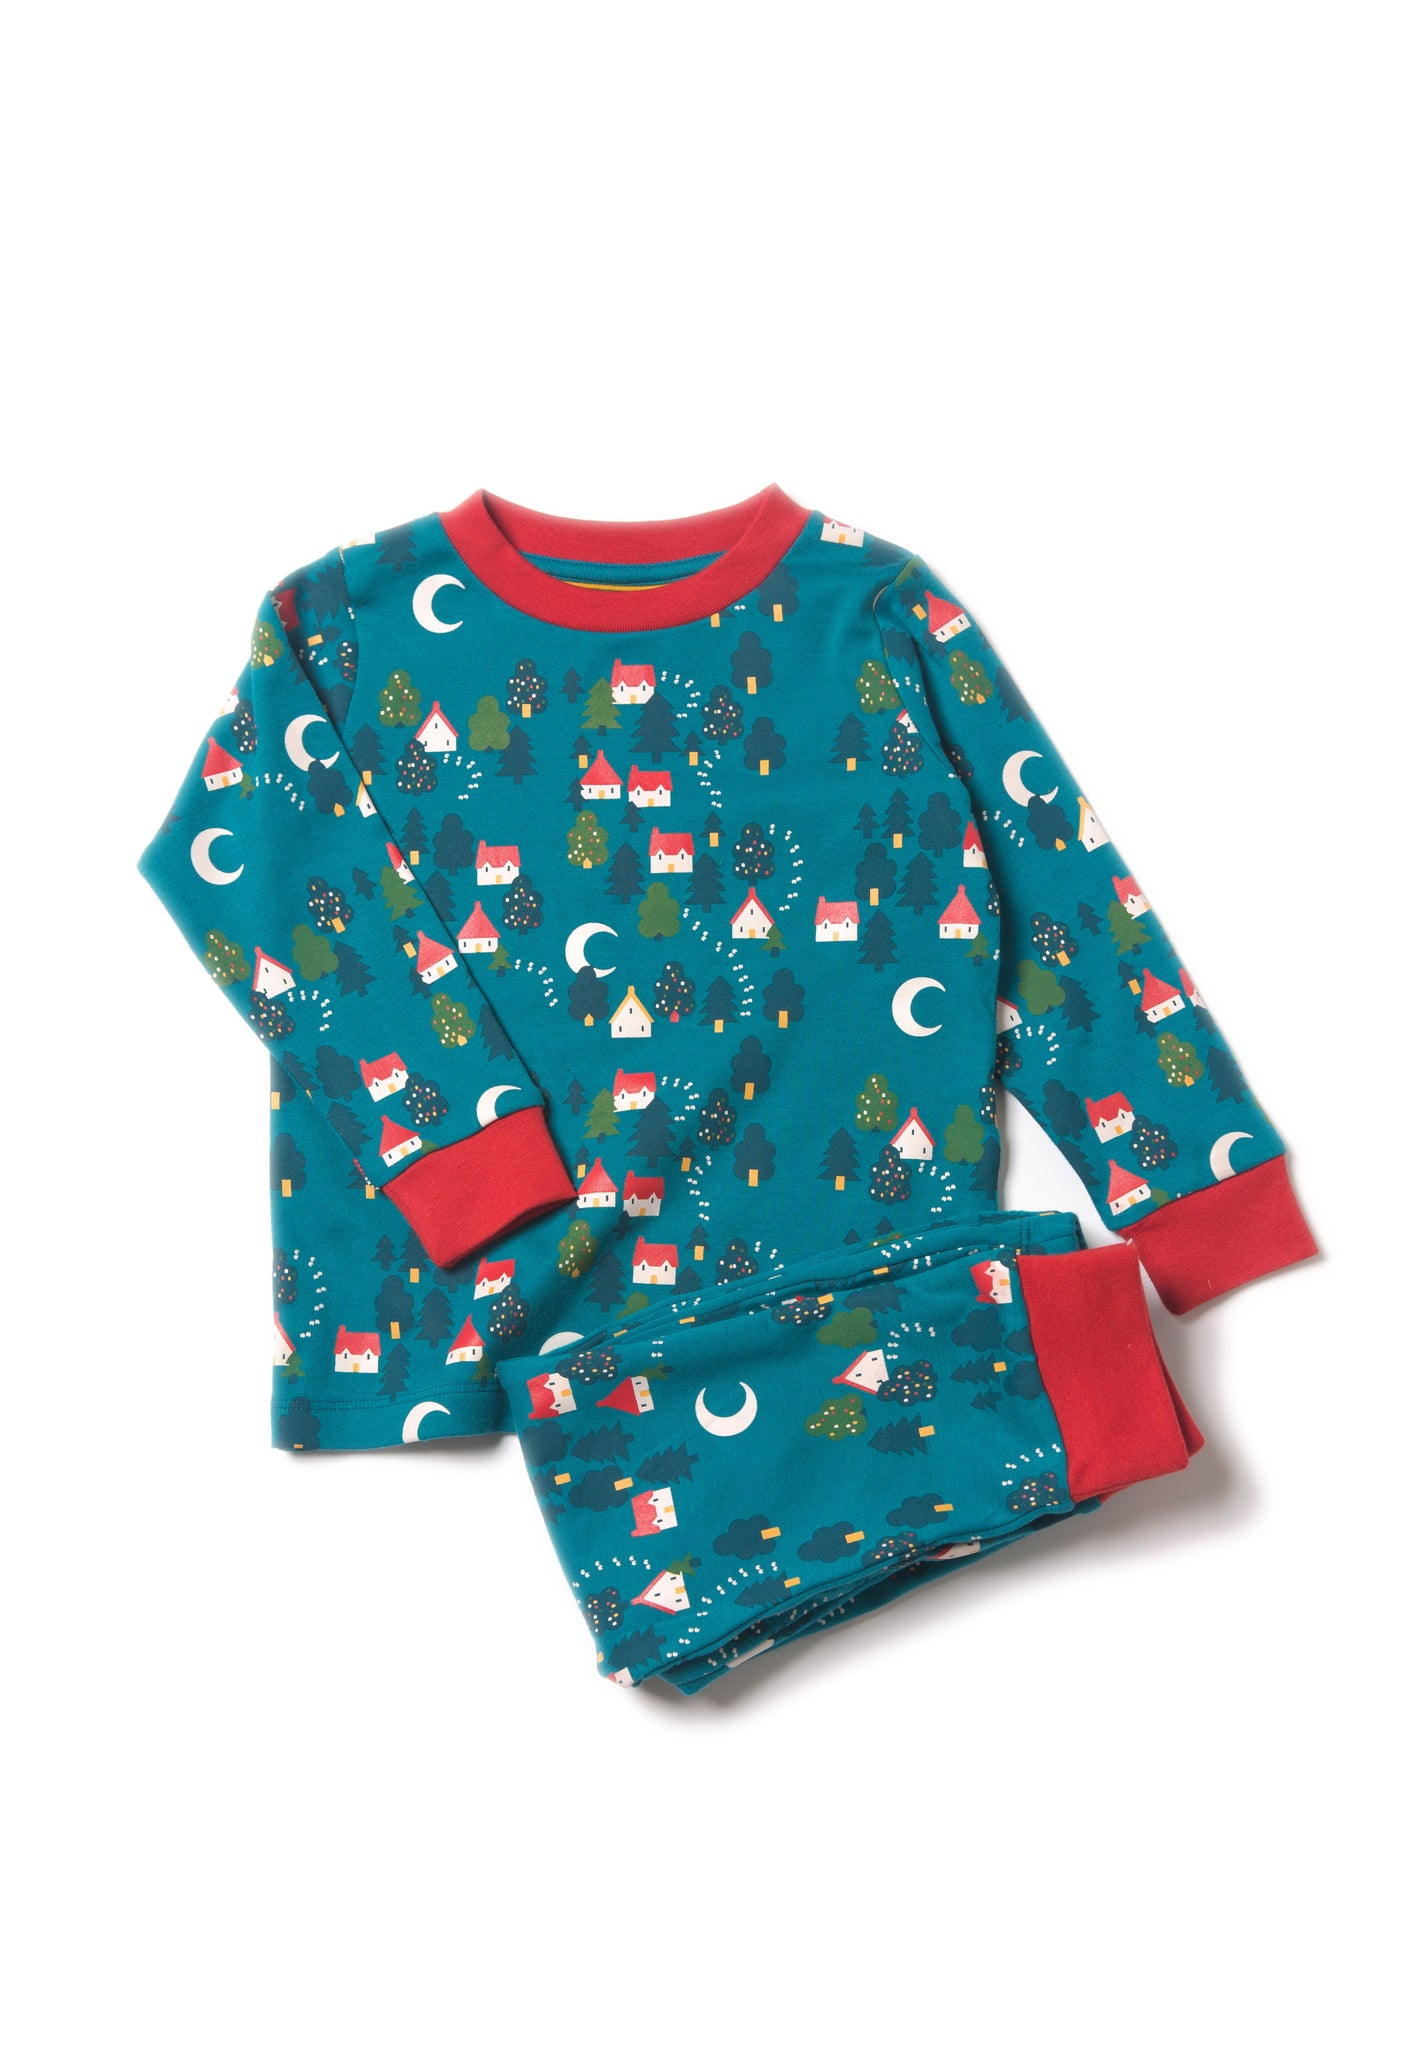 Forest Footprints PJ's